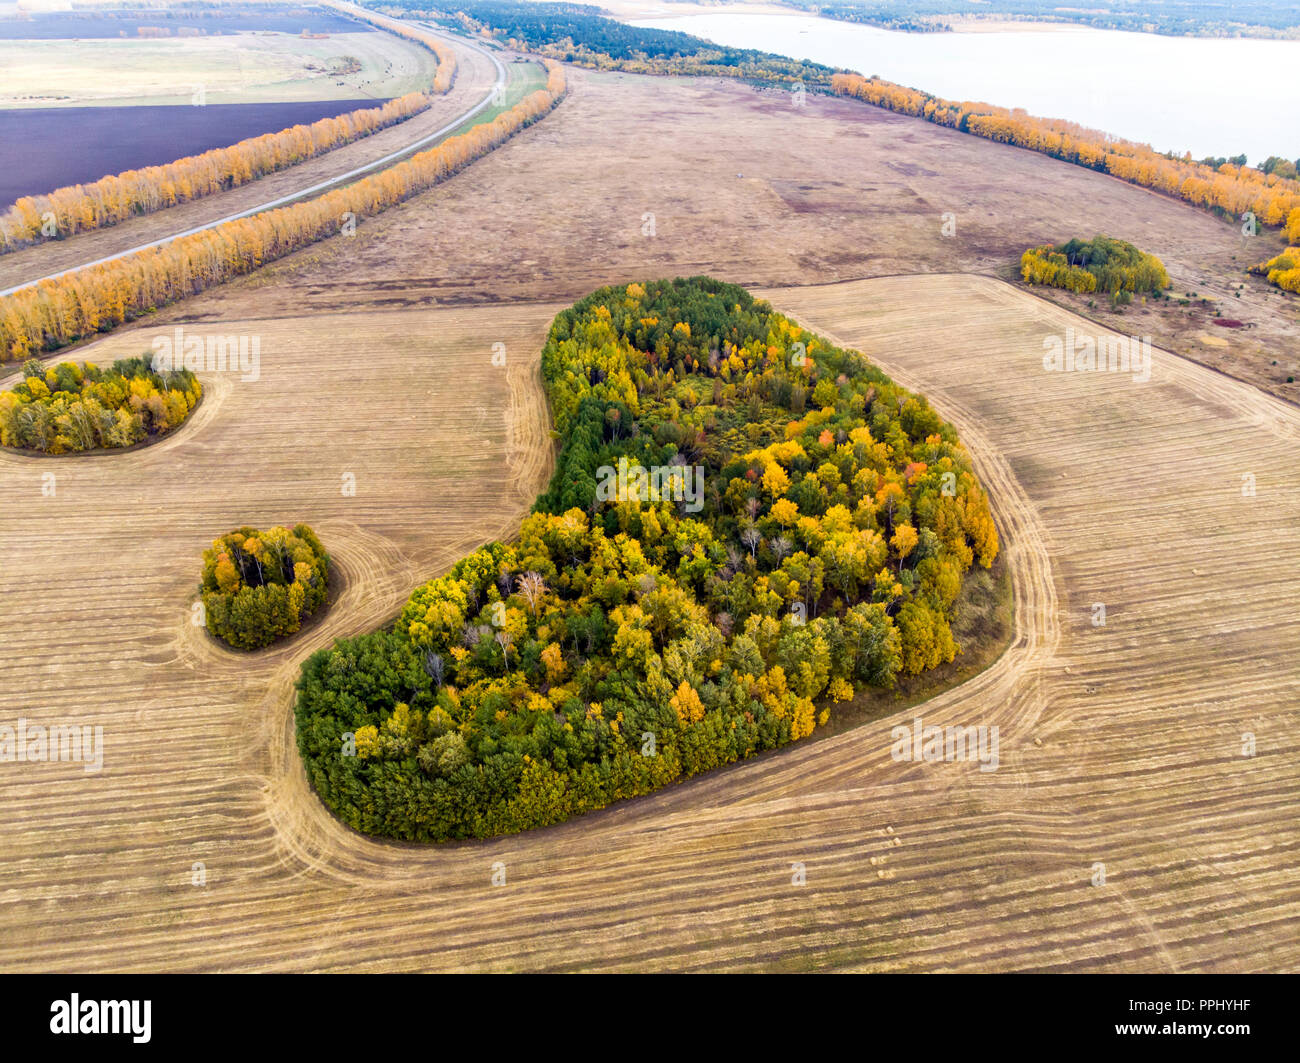 A view from above of autumn forest forests and a farm field in the forest. Harvesting on a wheat field. Russia Altai territory. Top view small Islands of forest in the field. Stock Photo